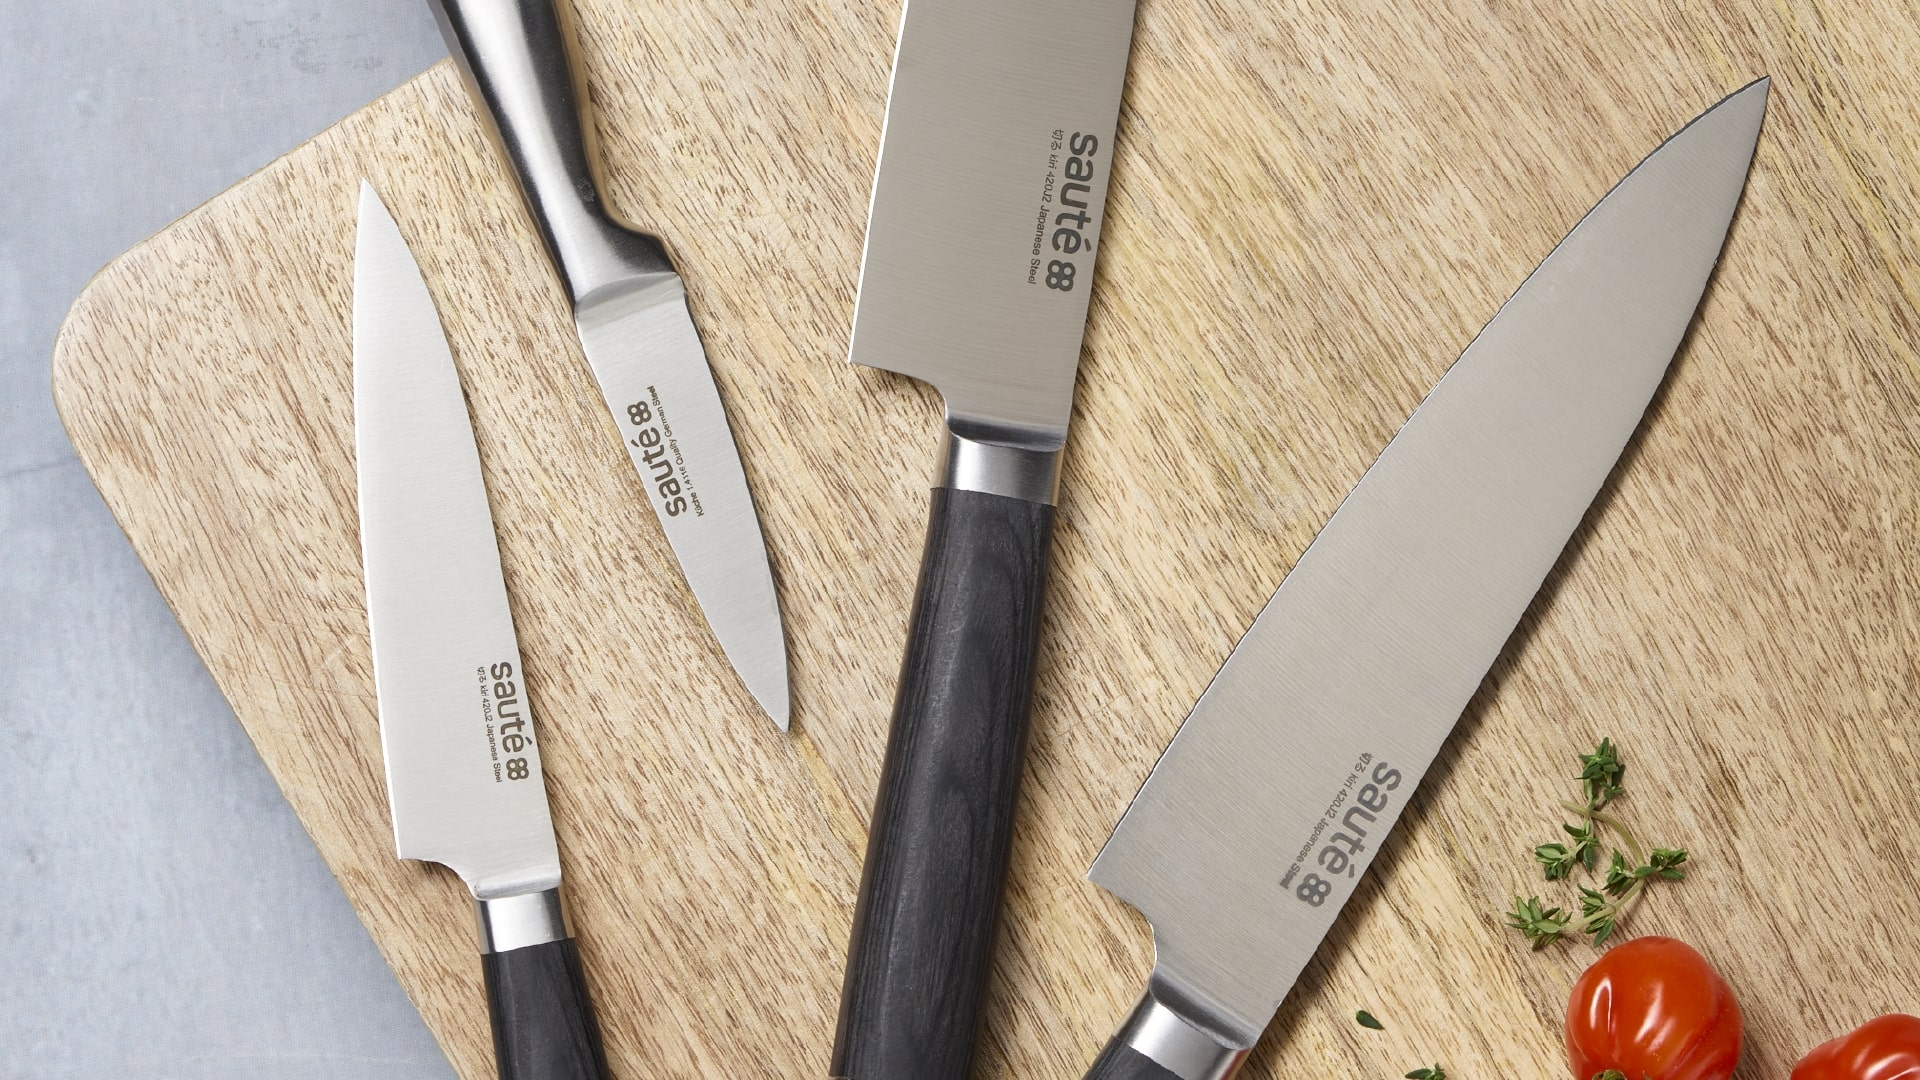 Make Sure That Safety Comes First When Caring For Kitchen Knives